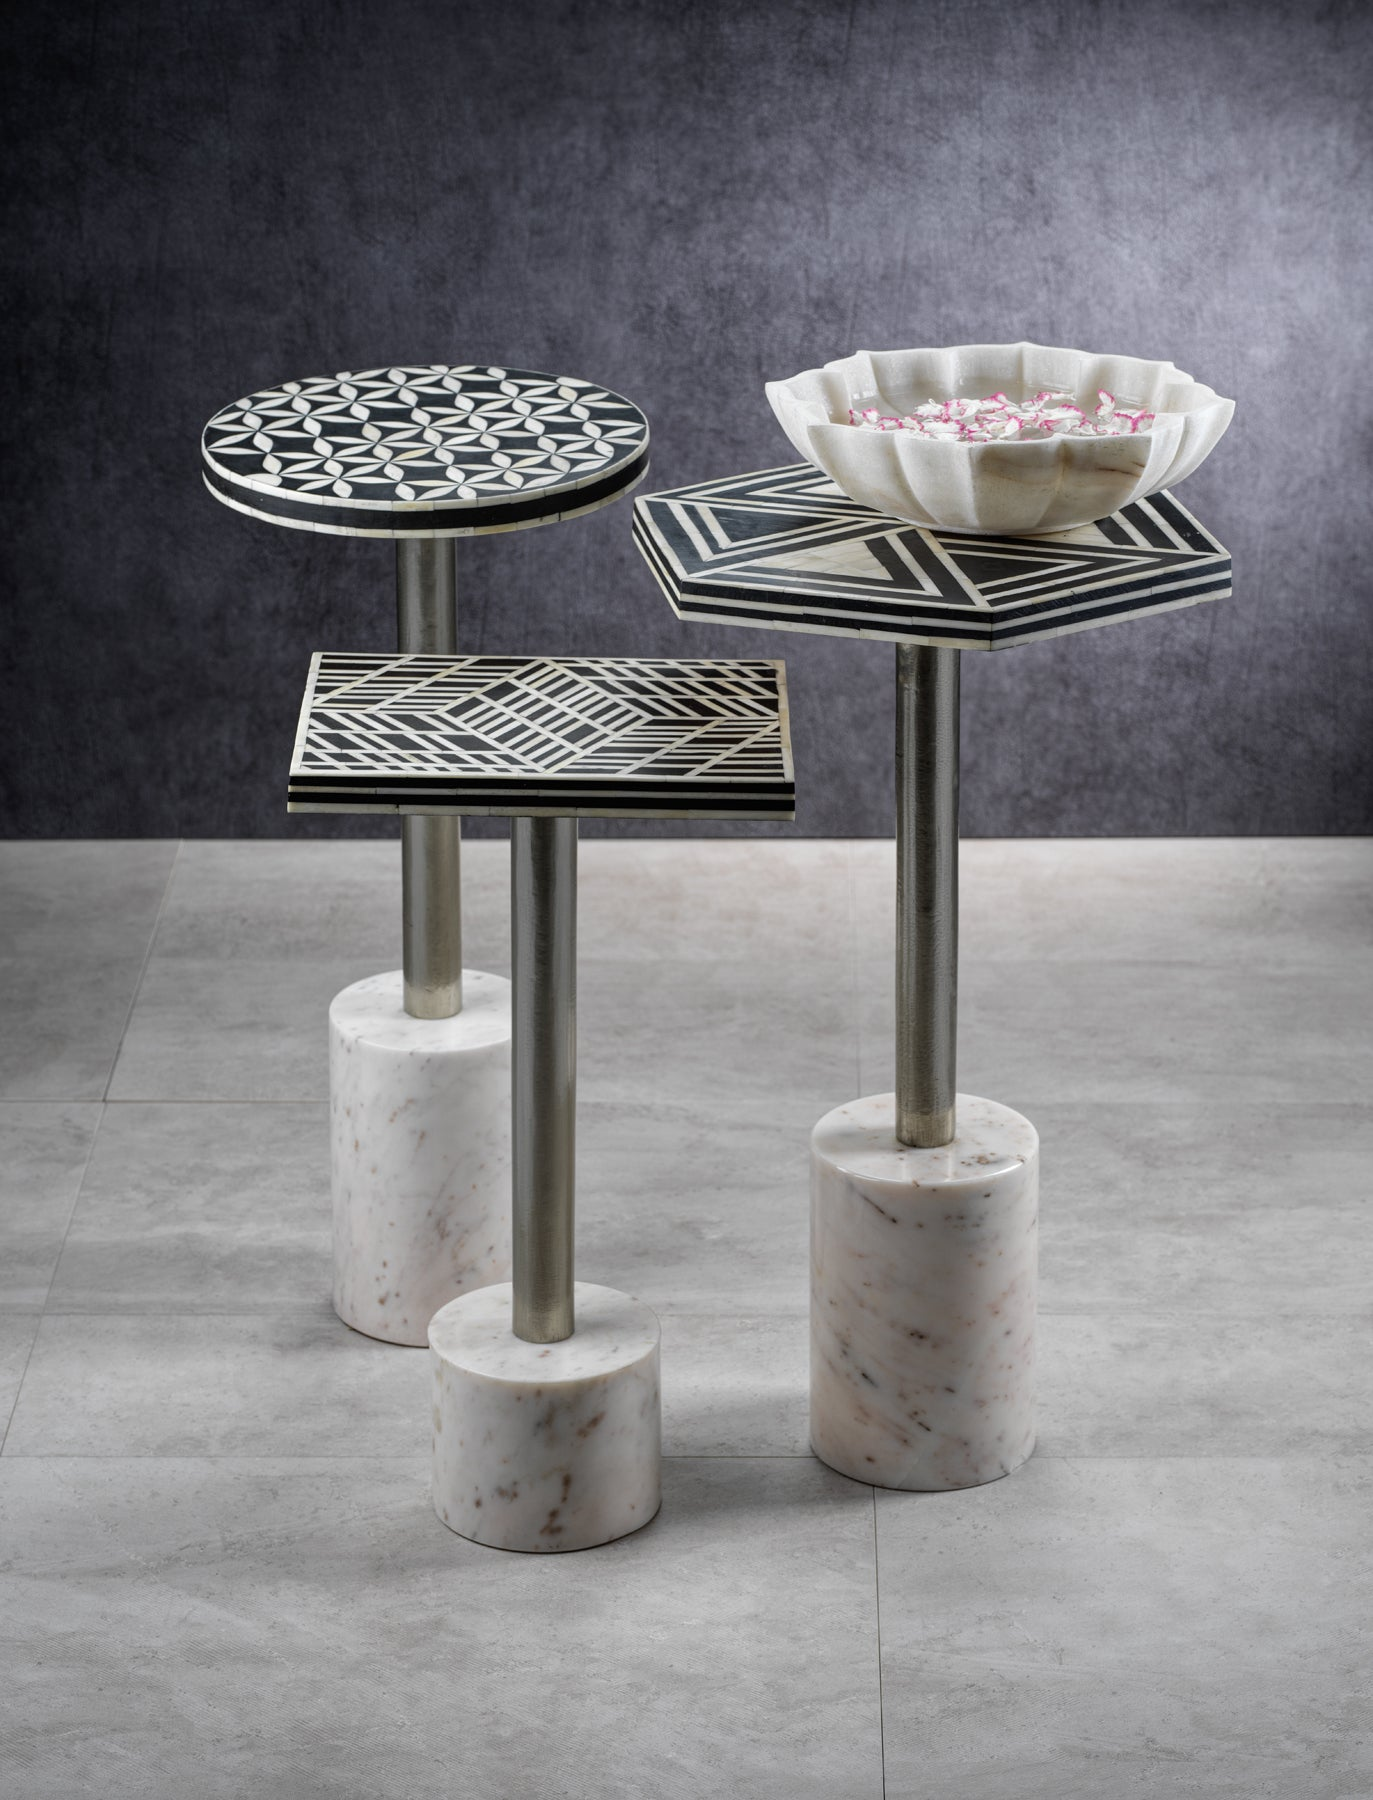 Sultana Hexagon Cocktail Table on Marble Base - CARLYLE AVENUE